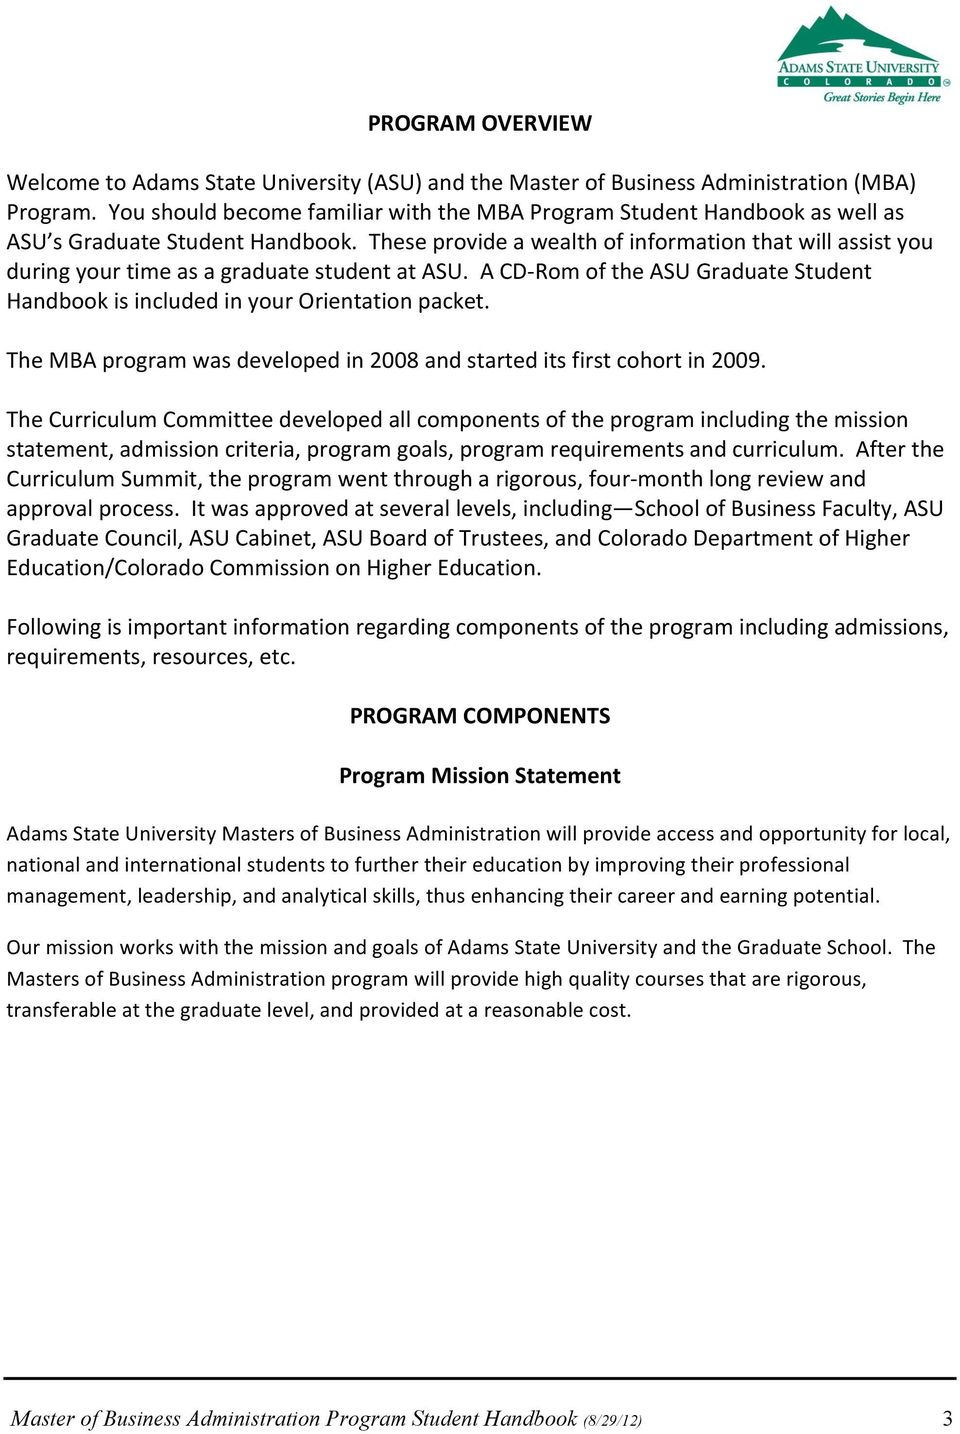 These provide a wealth of information that will assist you during your time as a graduate student at ASU. A CD- Rom of the ASU Graduate Student Handbook is included in your Orientation packet.